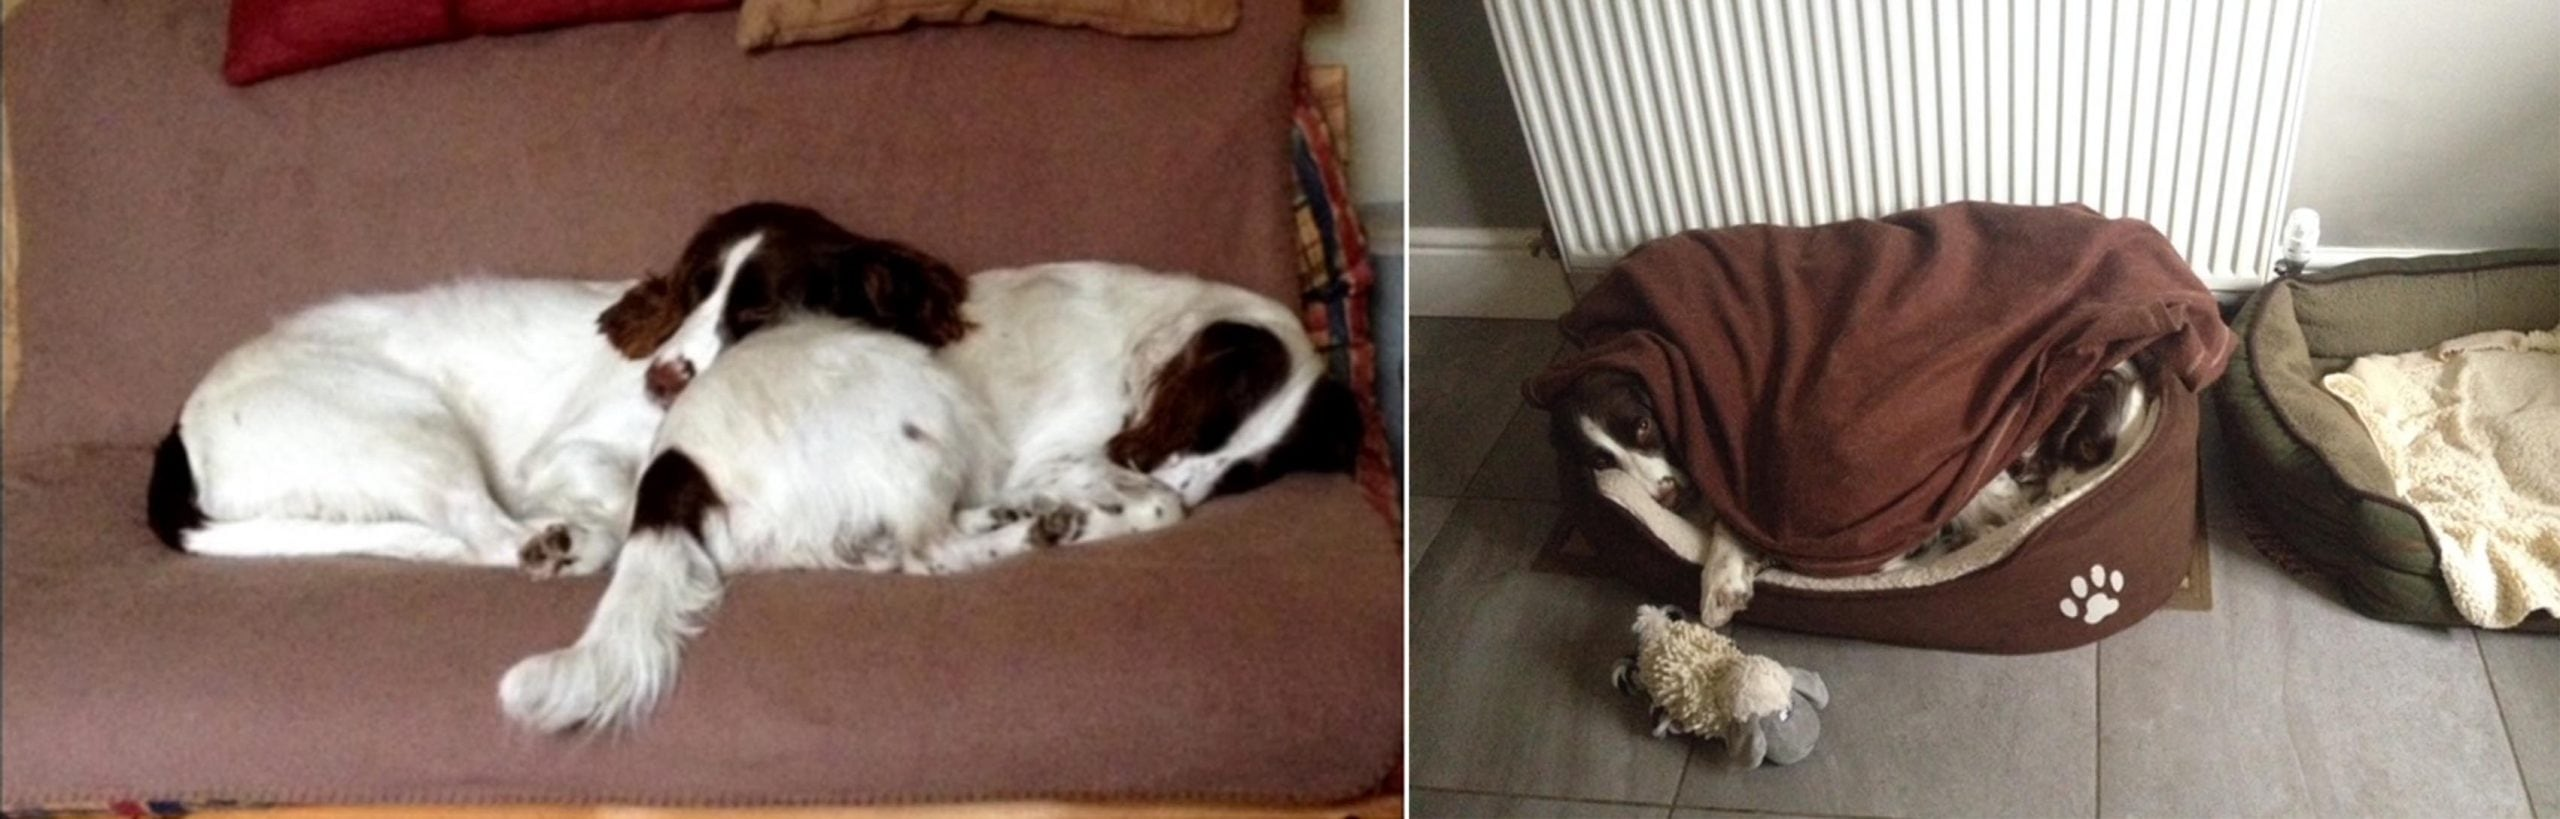 Coping-with-loss-dog-Springer-in-bed